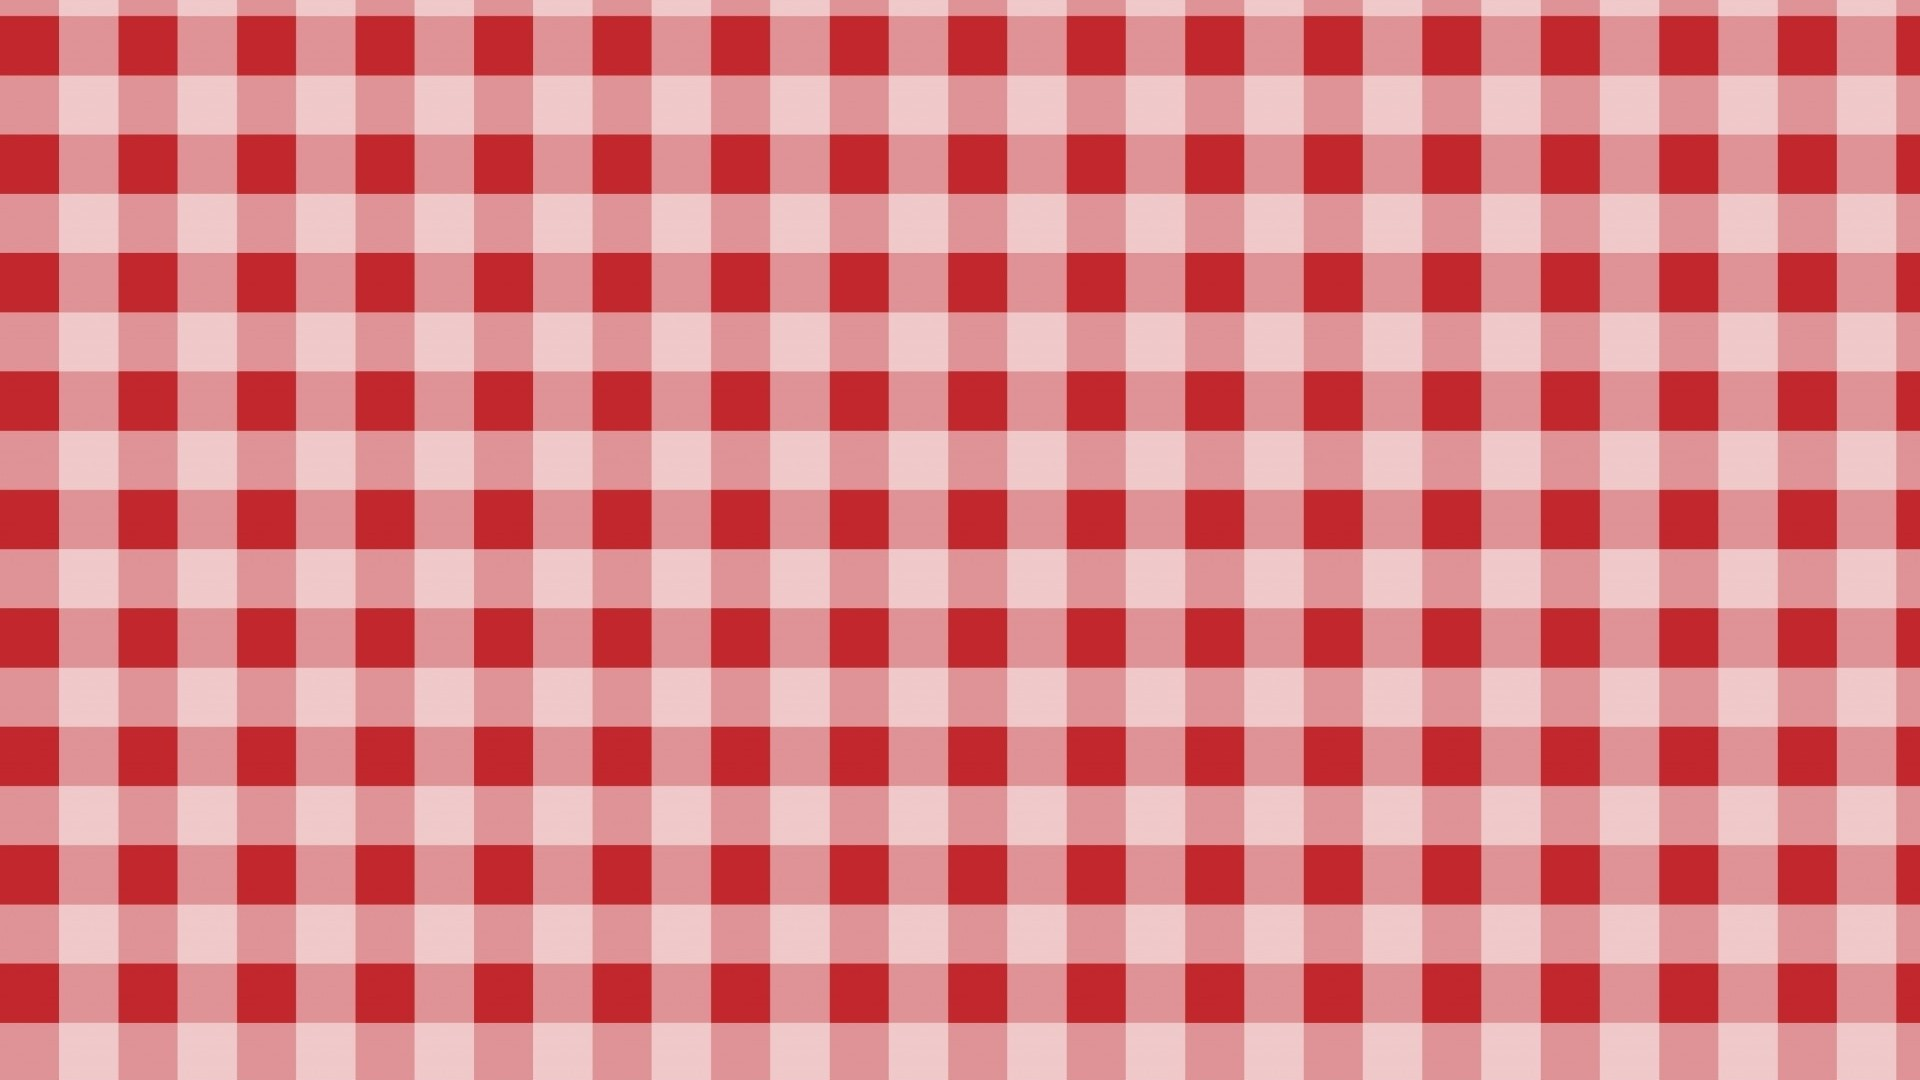 Checkered High Quality